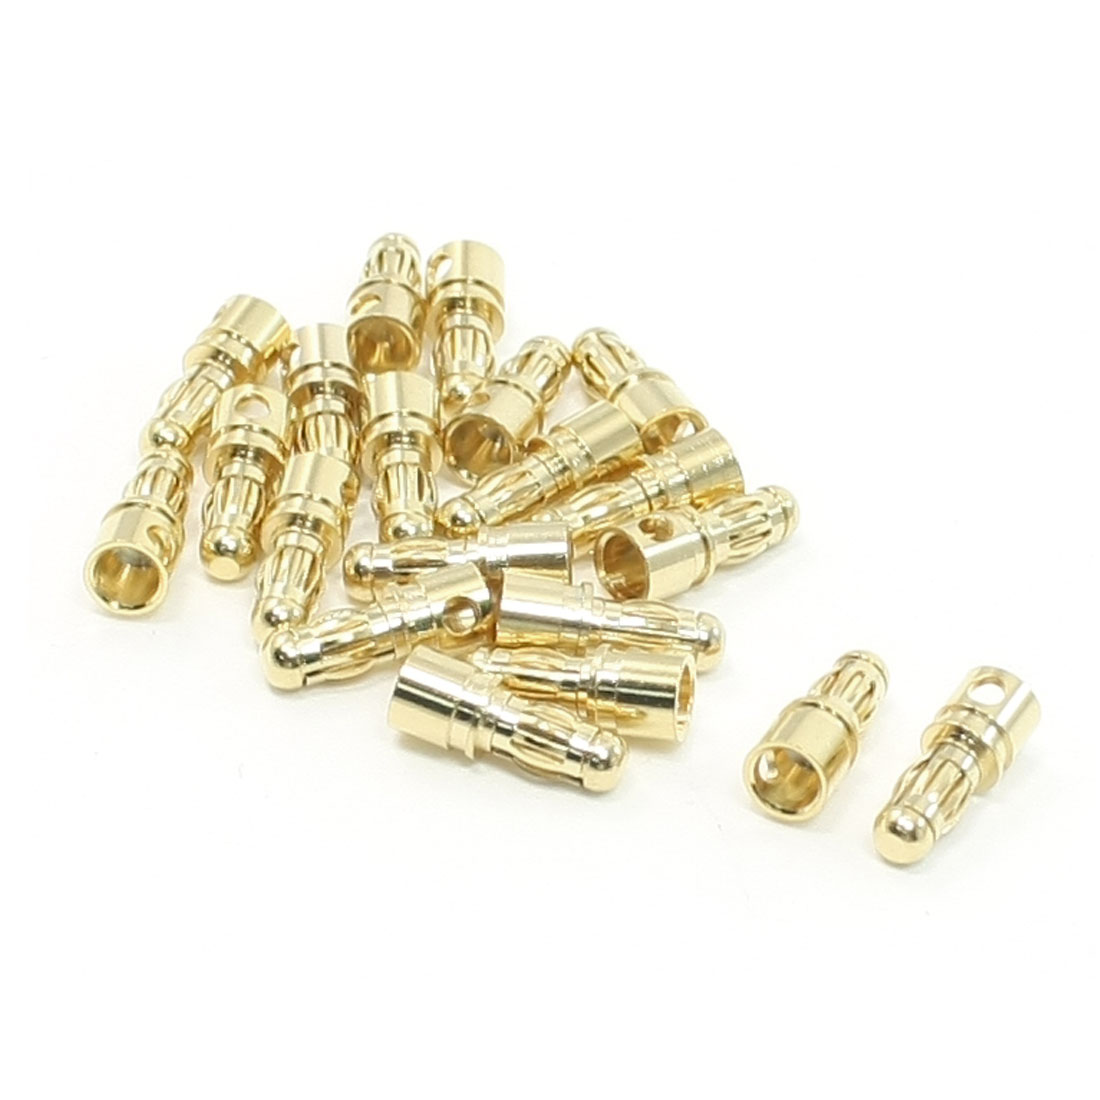 20pcs RC Model Li-Po Battery Male Banana Connector 3.5mm